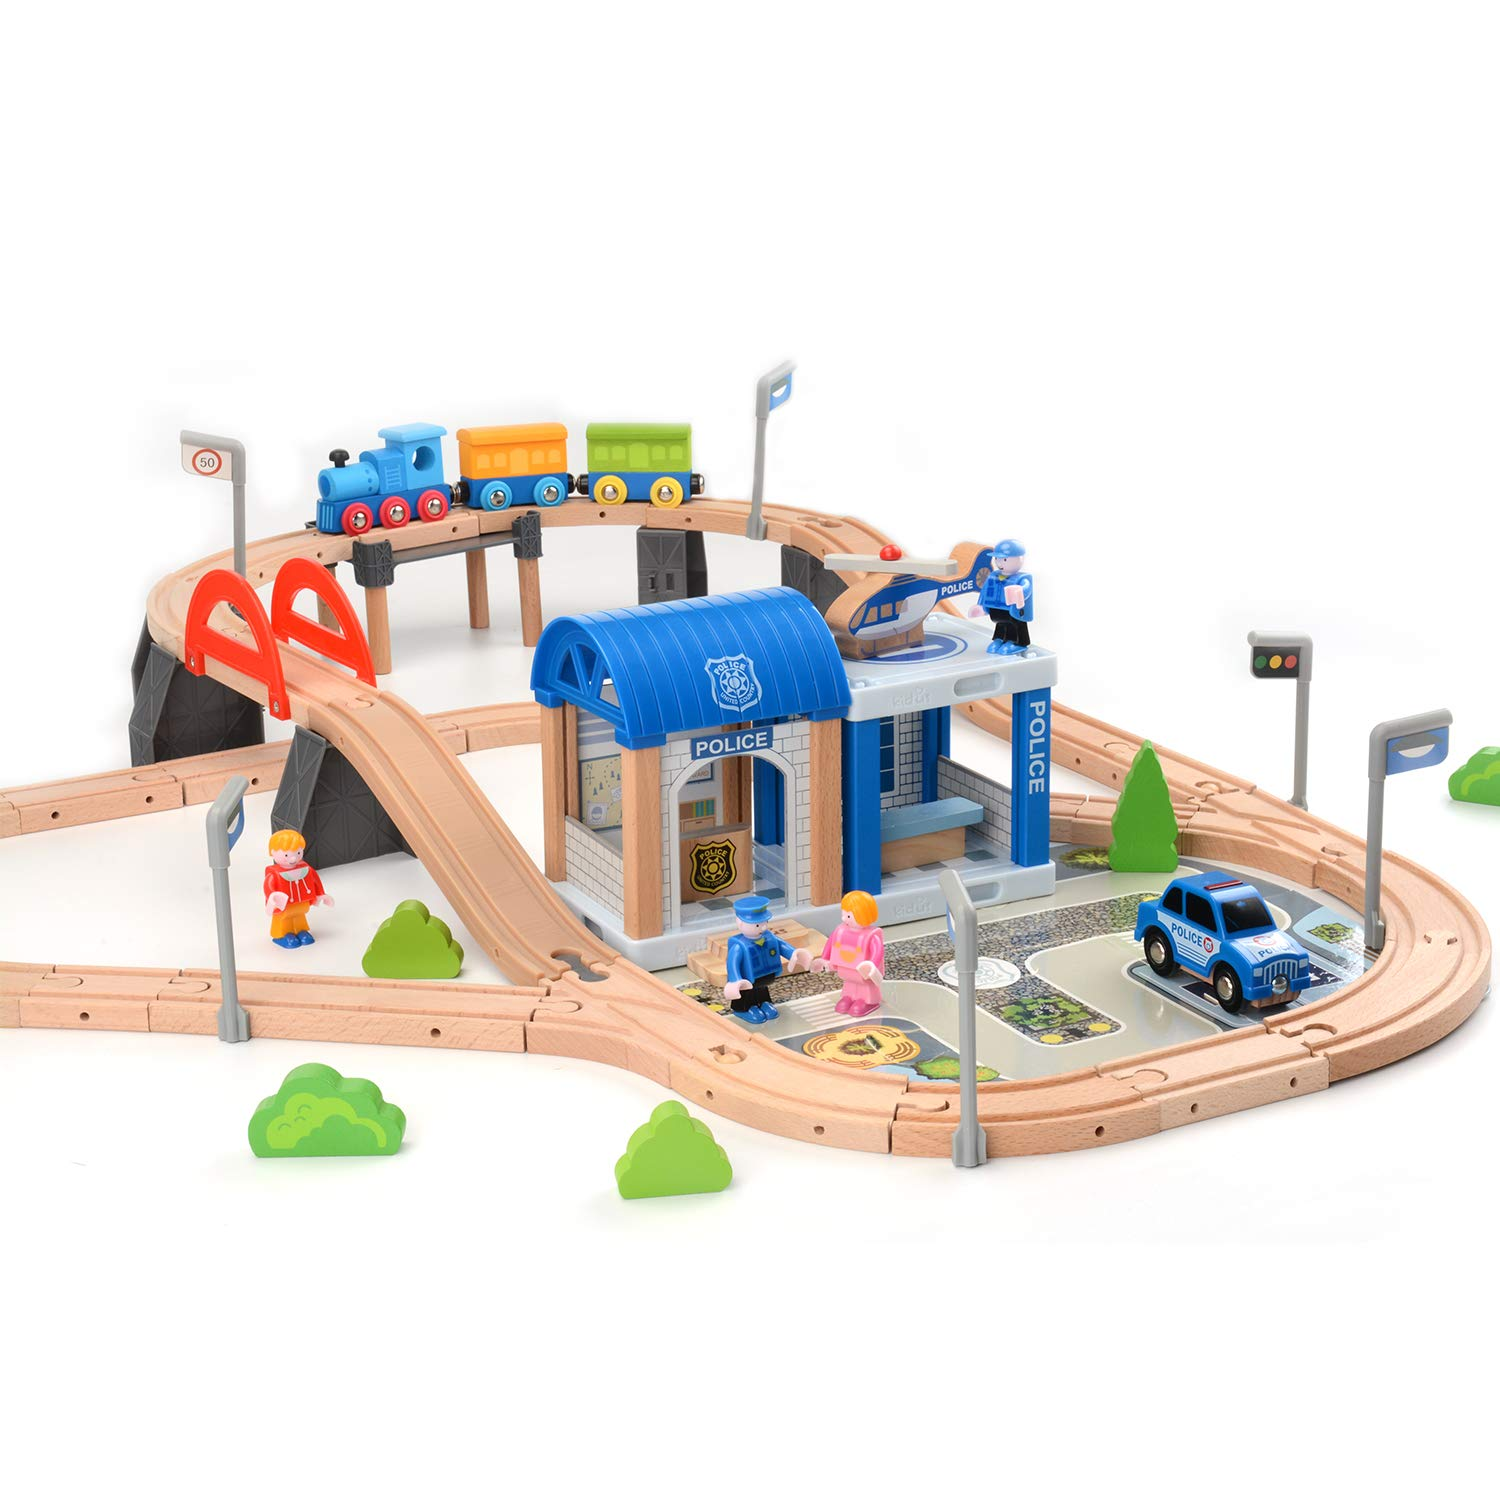 ZONXIE Wooden Train Track Sets Fits Thomas Brio Play Train Set with Bridge Battery Operated Play Set Police Office Deluxe Accessories Railway for Kids Toddlers Age 1 and Up (90pcs)